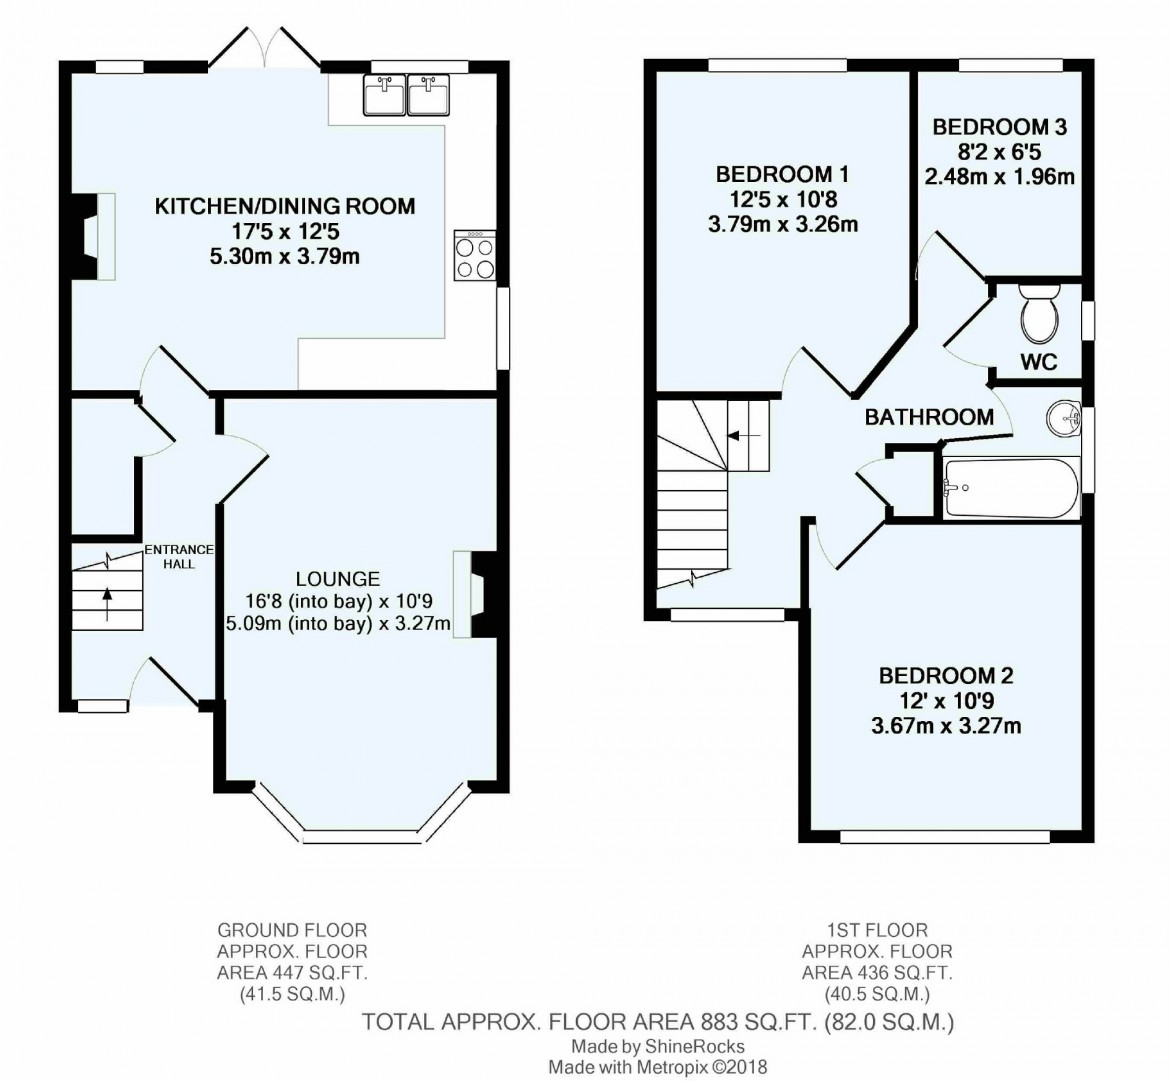 Floorplans For Temple Road, South Croydon, Surrey